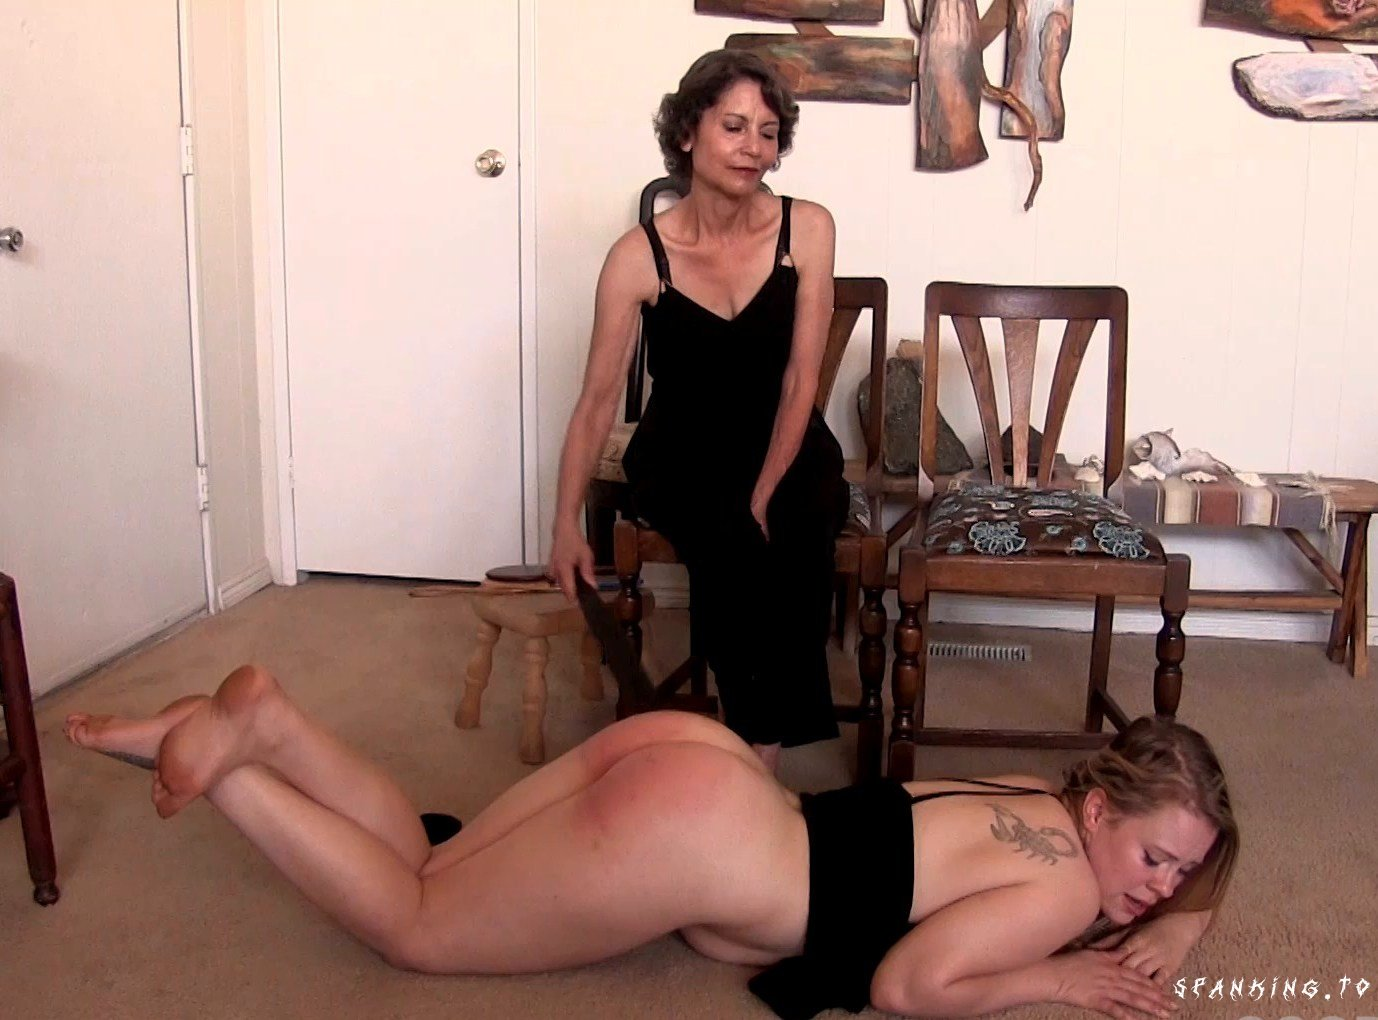 Primed And Ready For A Spanking Part Two - Goodspanking - Full HD